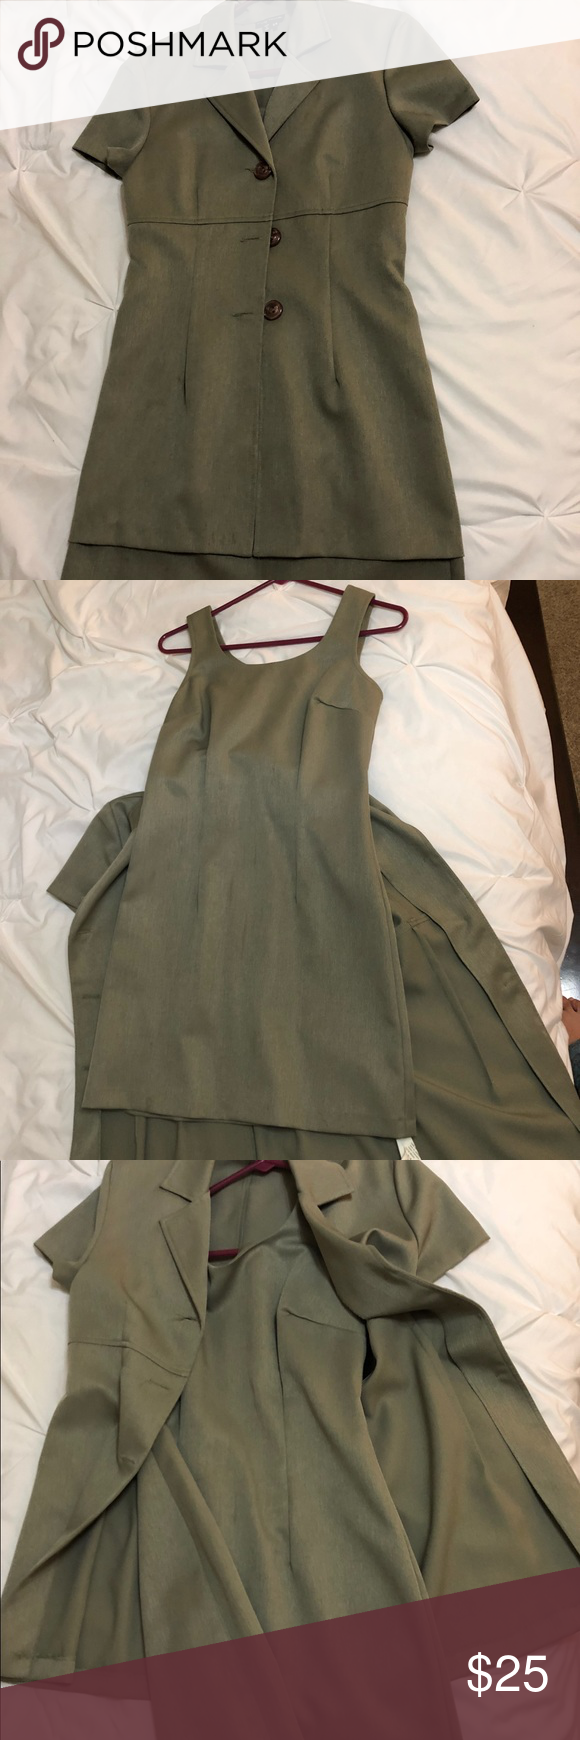 My Michelle 2 piece set 2 piece sage green dress with jacket. 100% polyester with tags still attached. My Michelle Dresses #sagegreendress